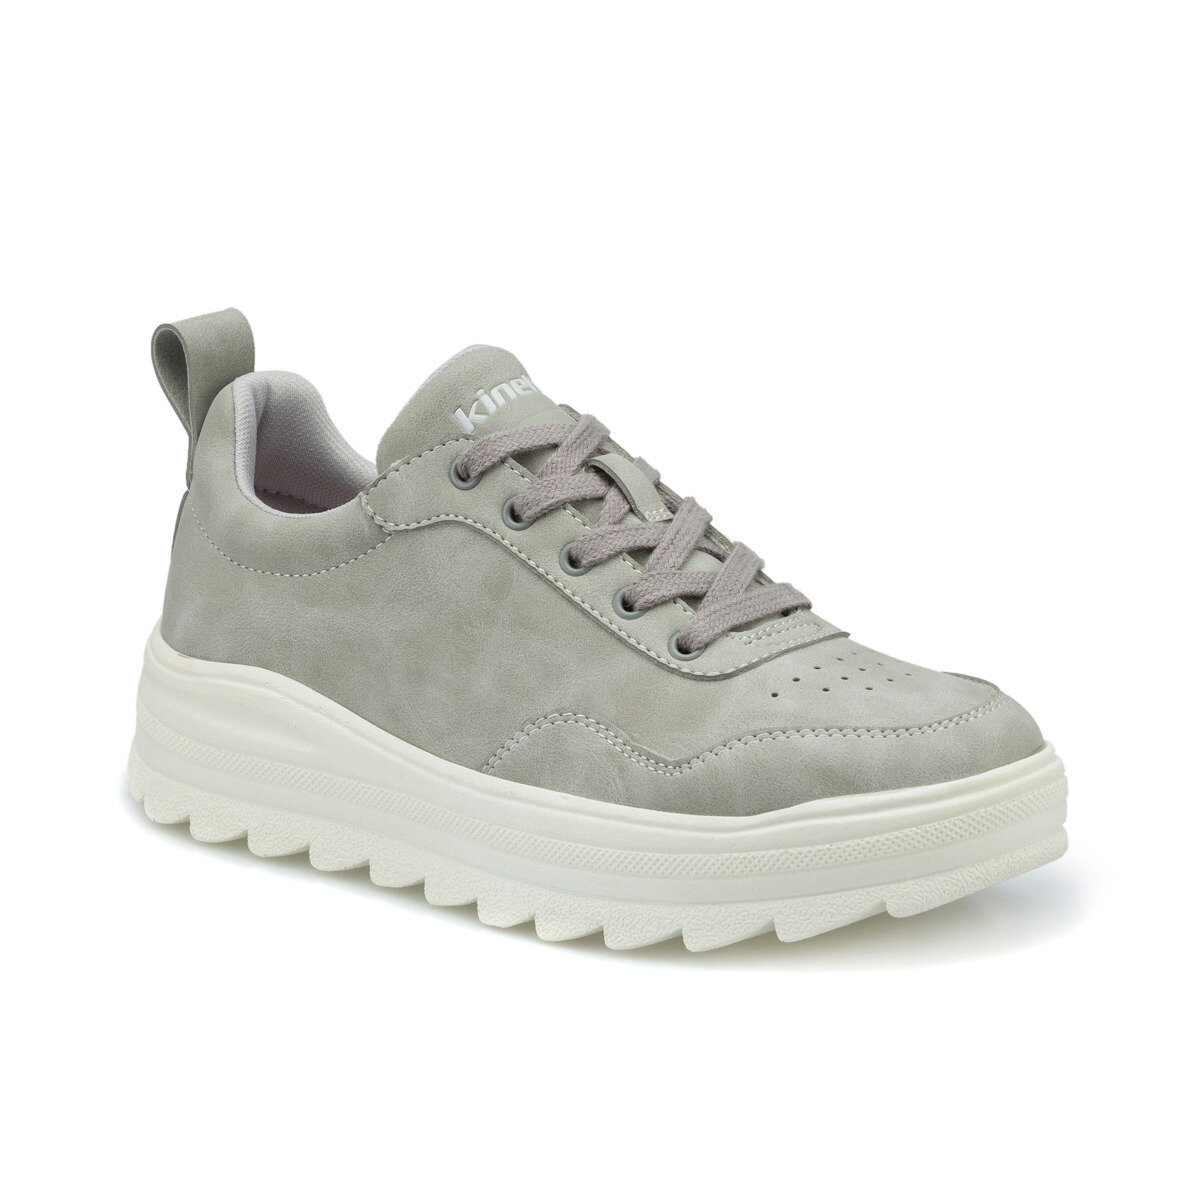 FLO IVA Gray Women 'S Sneaker Shoes KINETIX